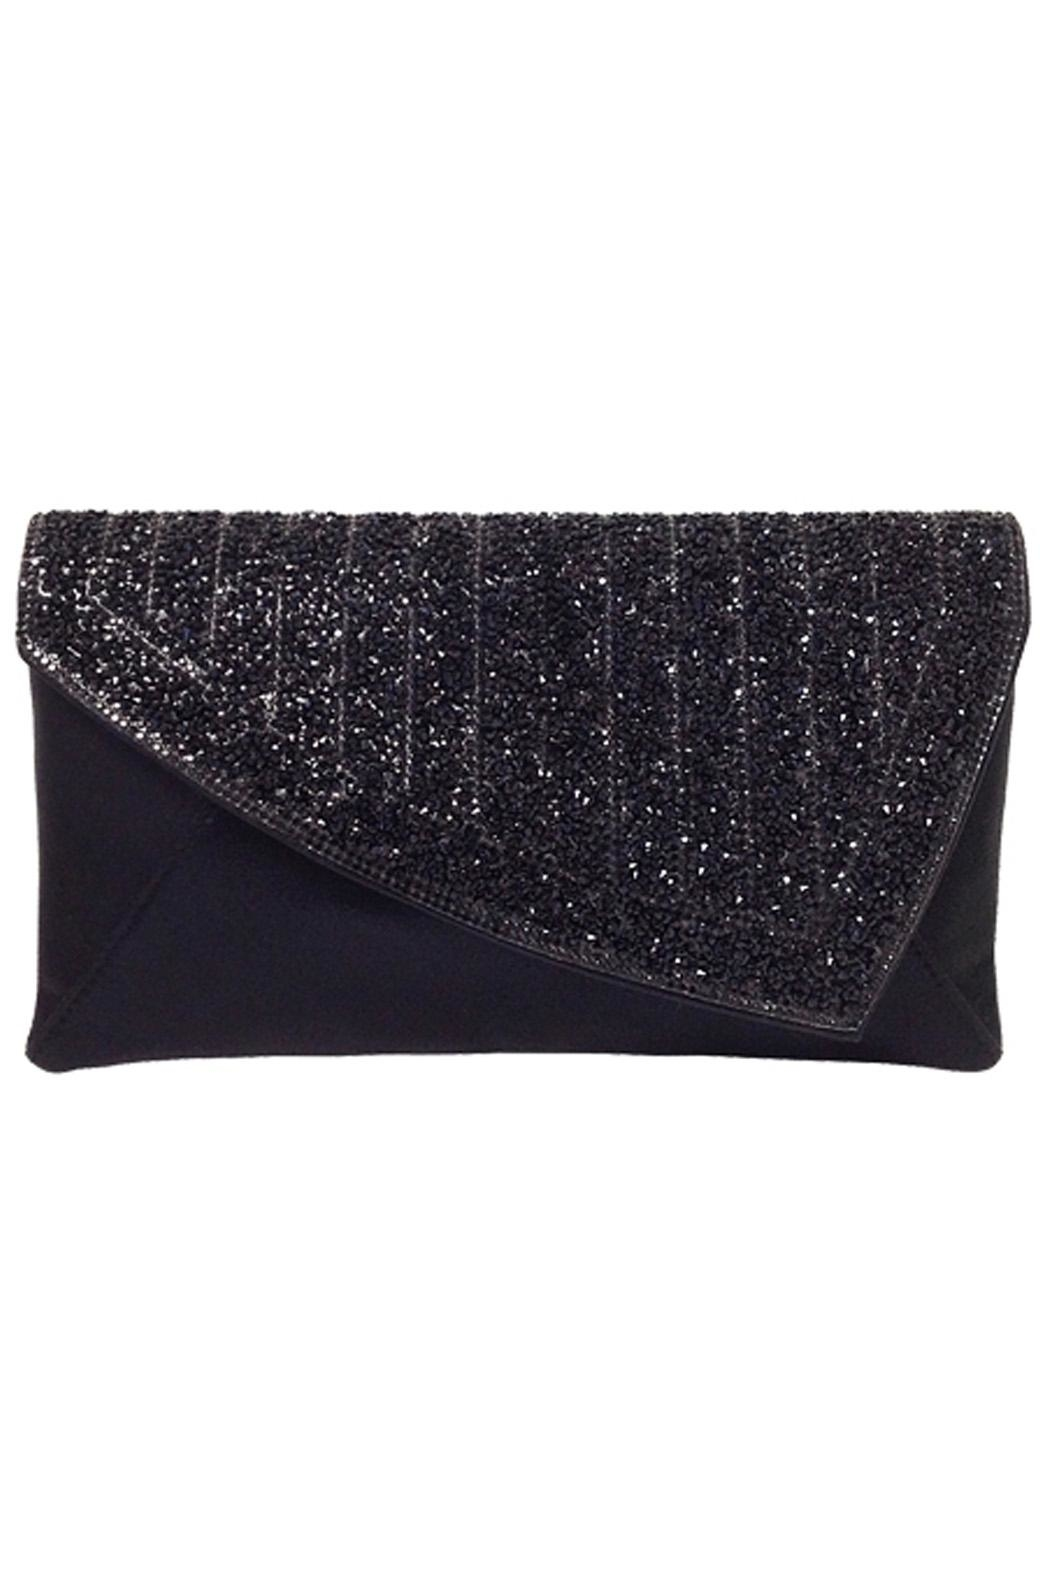 Wild Lilies Jewelry  Black Crystal Clutch - Front Cropped Image